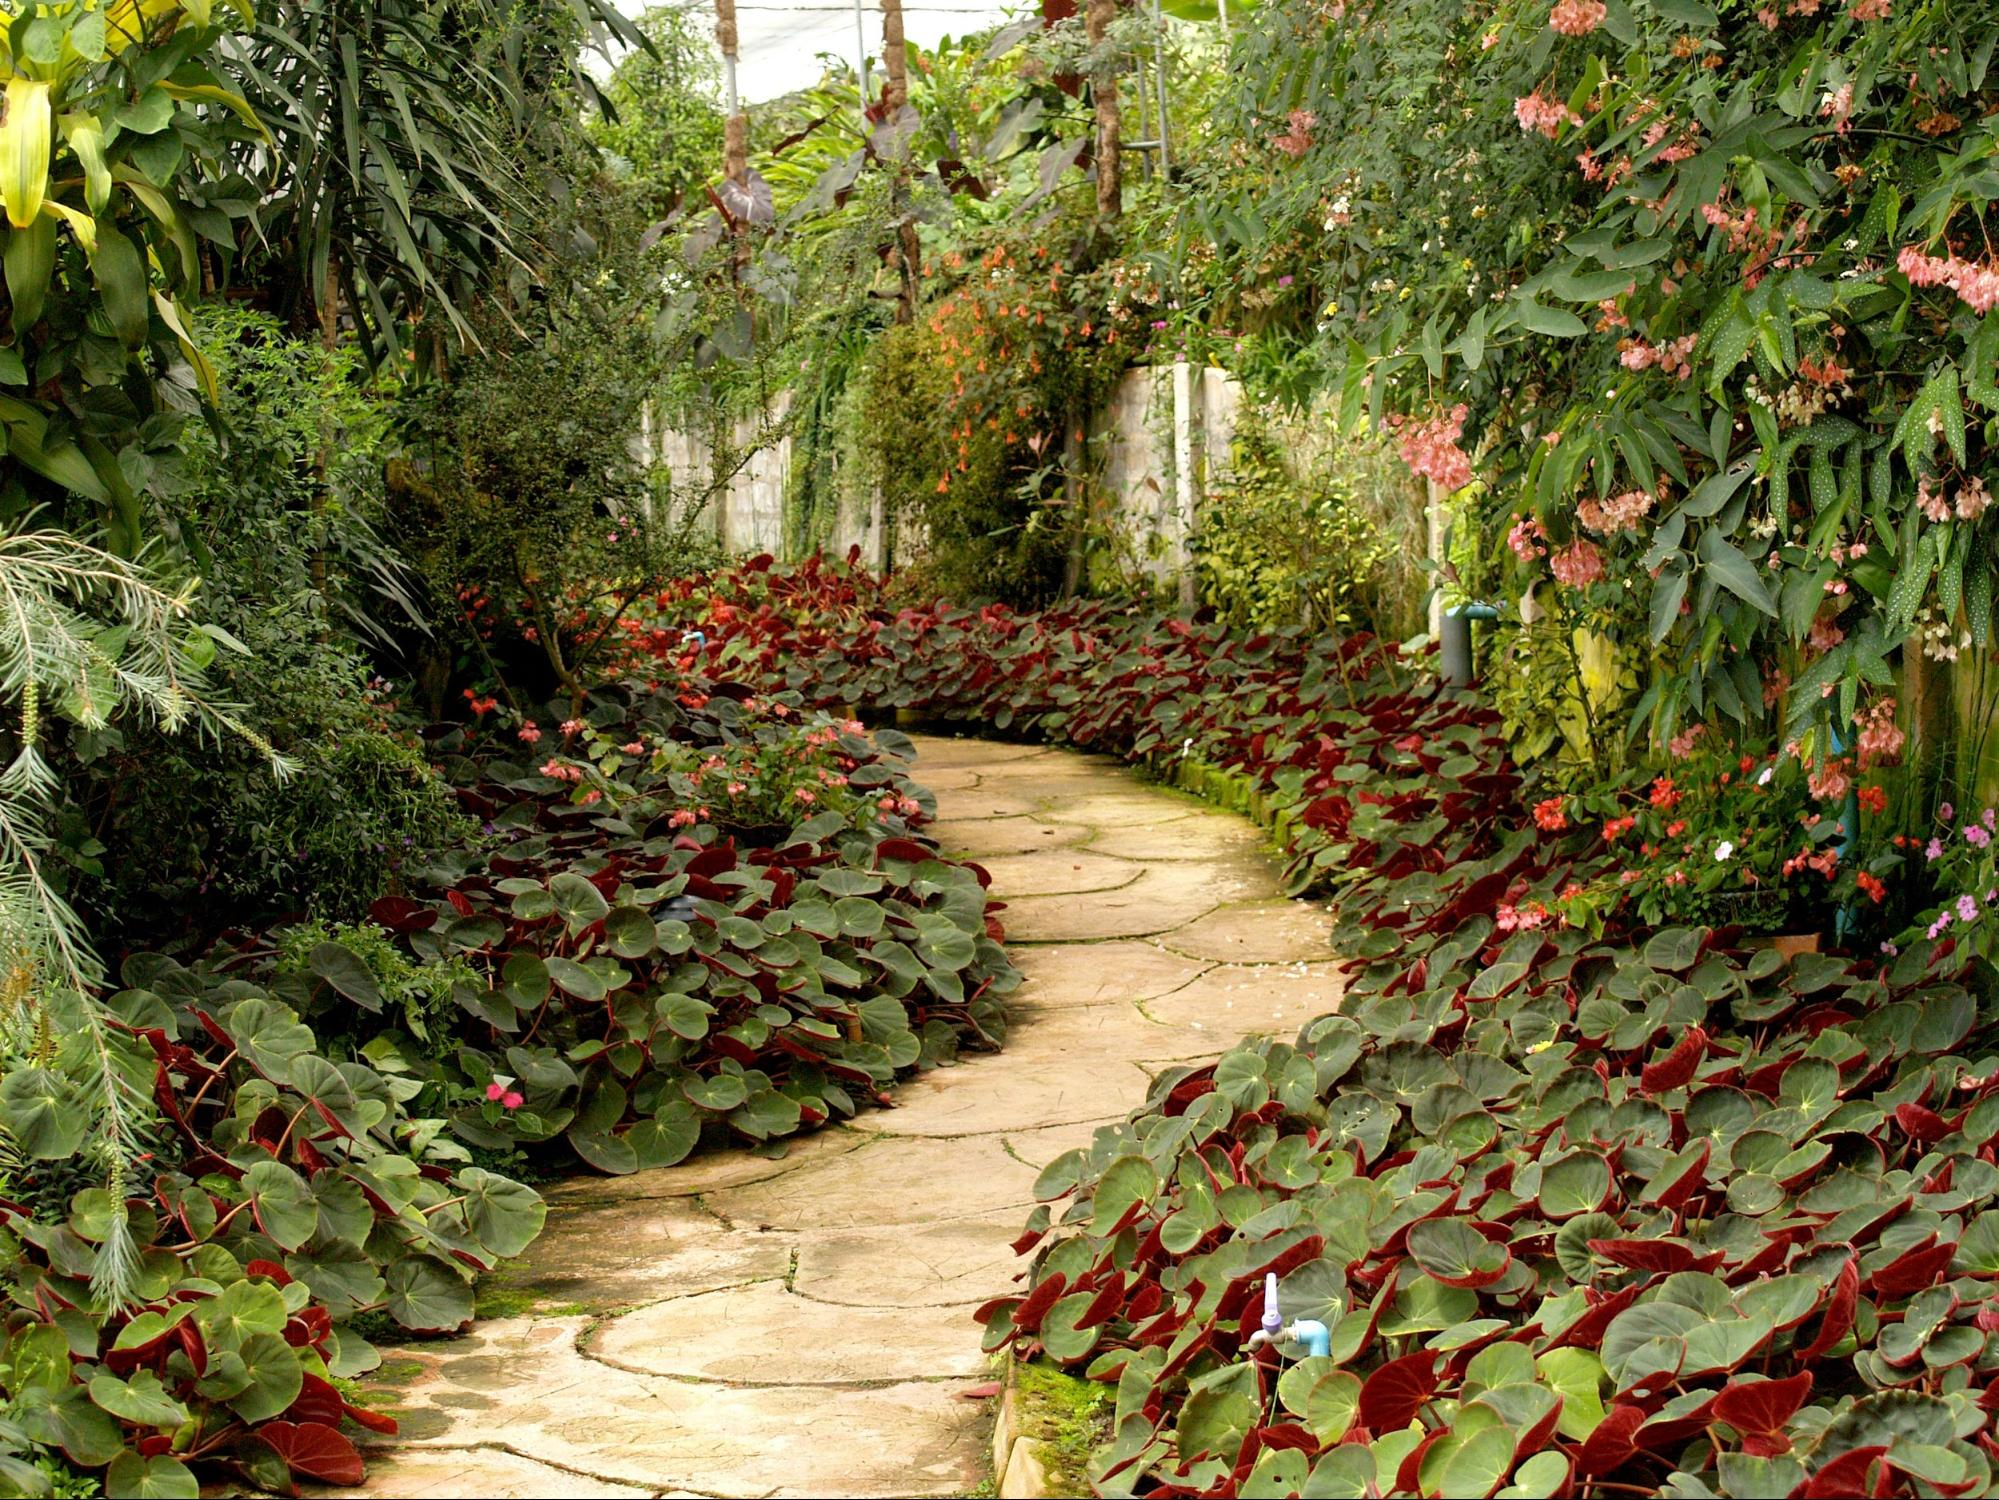 How much does landscaping and gardening cost in Sydney